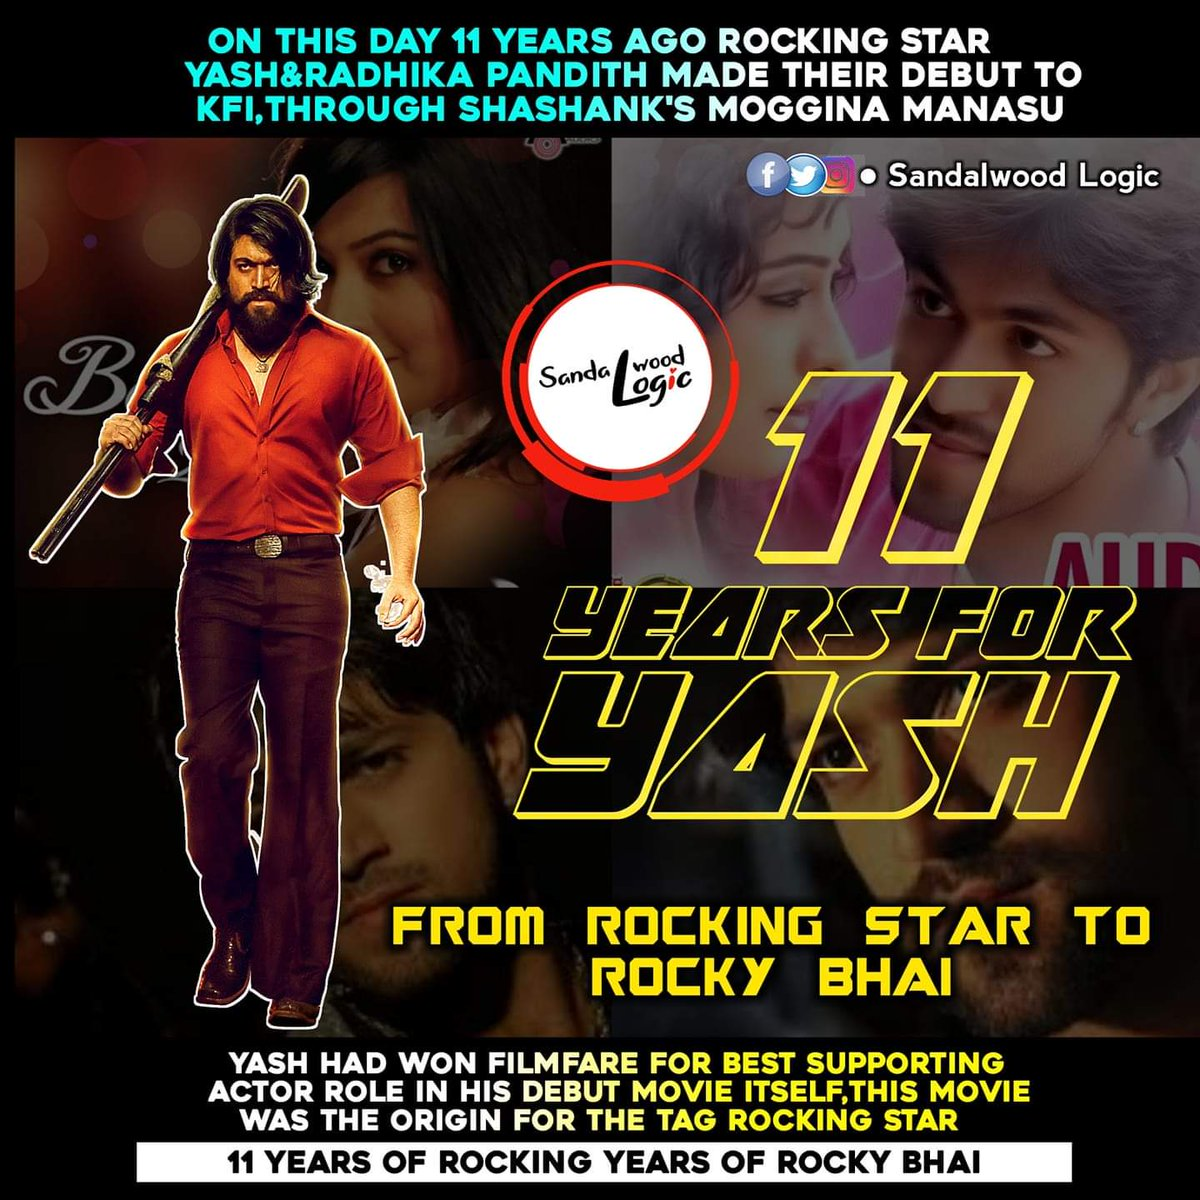 11 Years For @TheNameIsYash and @RadhikaPandit7 in KFI ❤️❤️❤️  #Yash #RadhikaPandit #11YearsForYashika